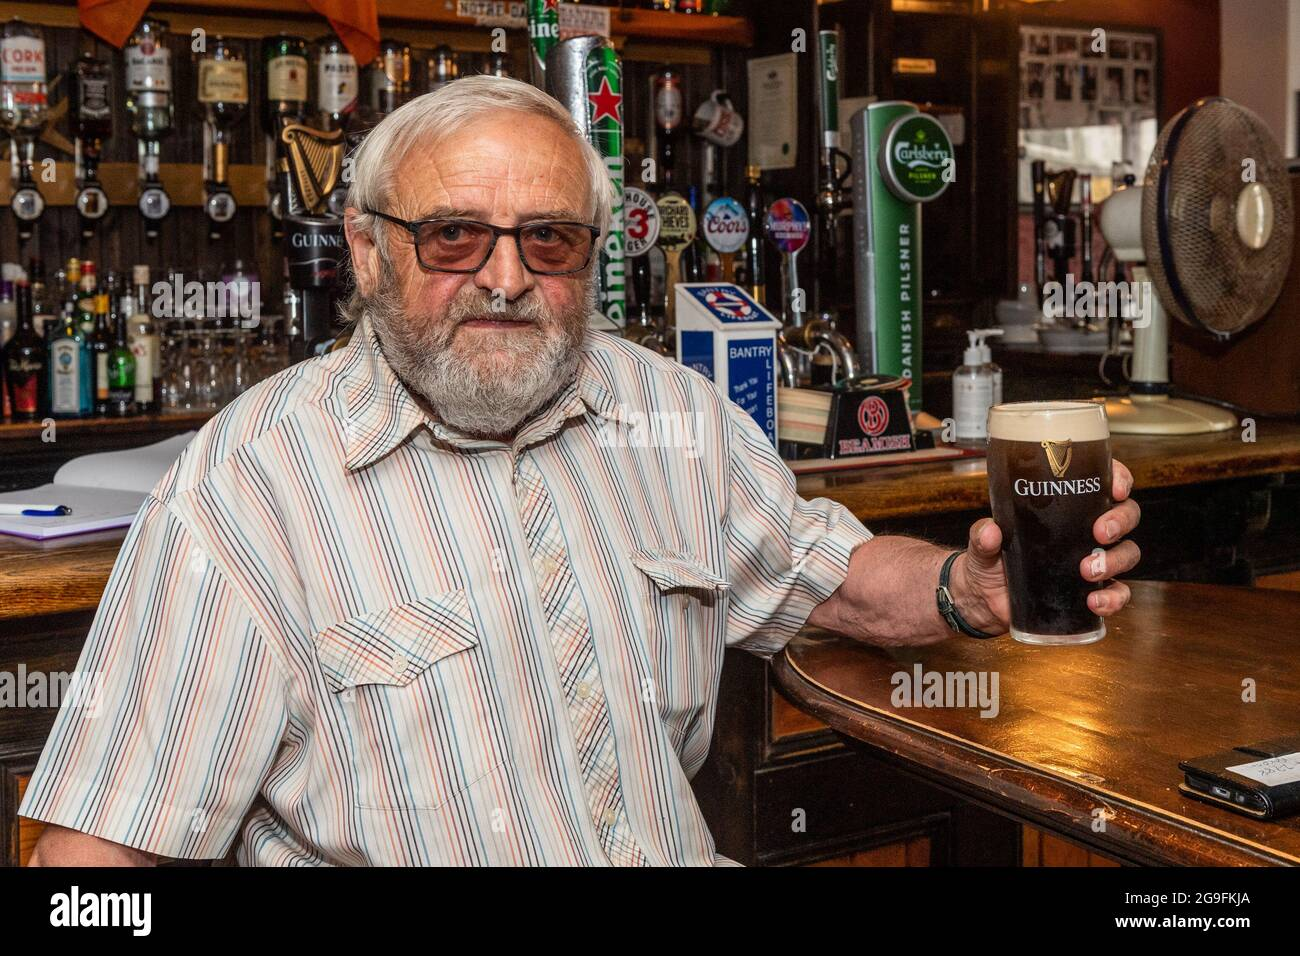 bantry-west-cork-ireland-26th-july-2021-today-the-so-called-wet-pubs-reopened-for-the-first-time-since-the-start-of-the-pandemic-first-customer-through-the-door-of-the-boston-bar-was-regular-eugene-hickey-from-bantry-credit-ag-newsalamy-live-news-2G9FKJA.jpg